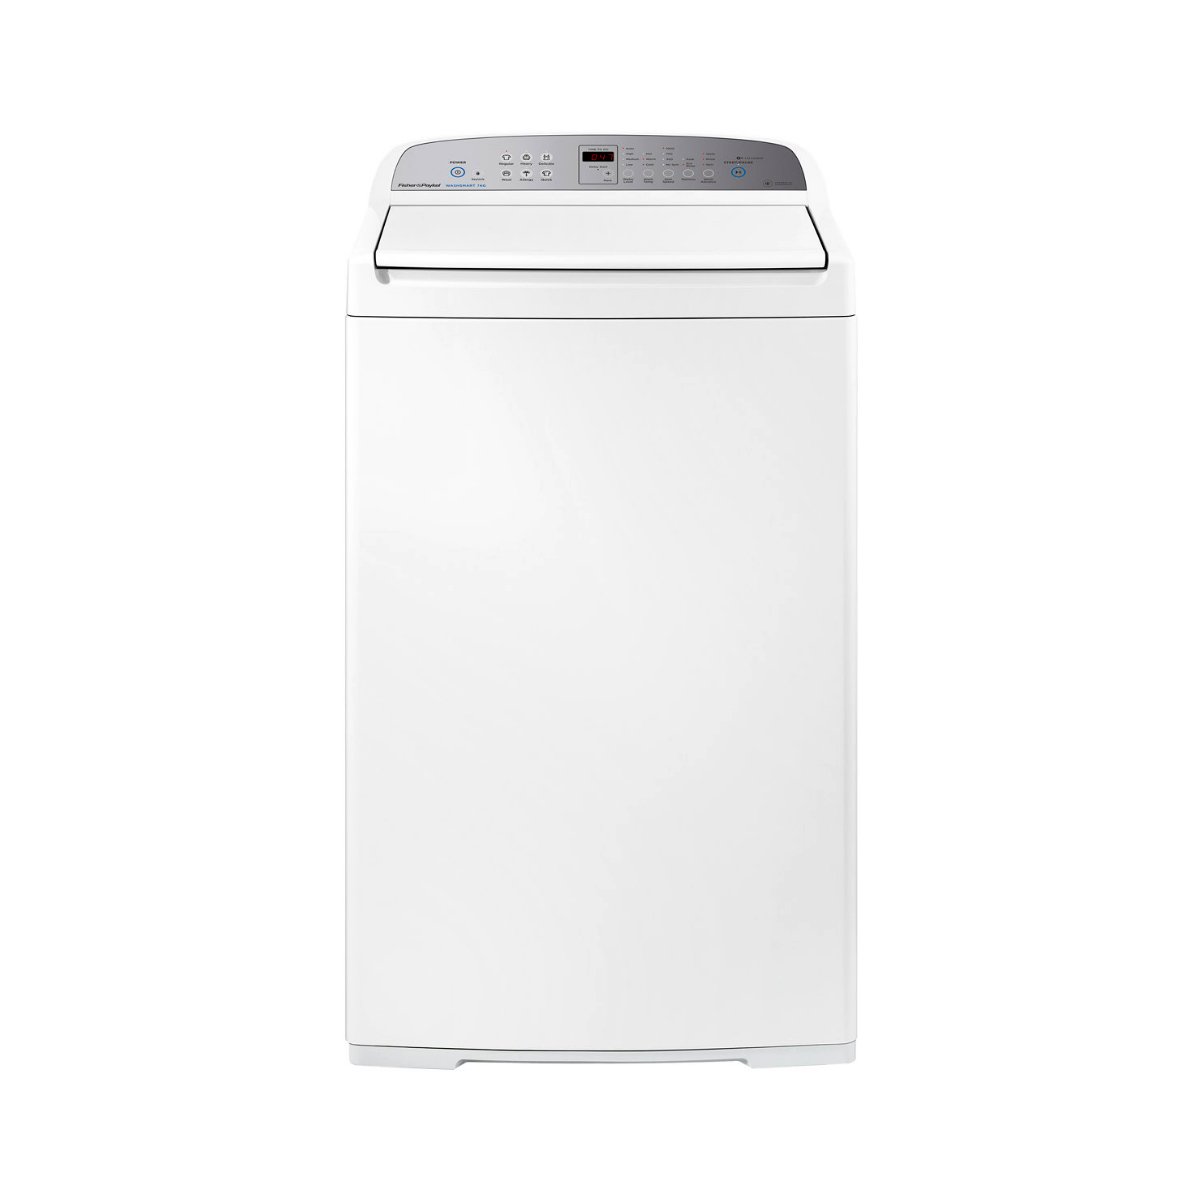 Fisher & Paykel WA7060G2 WashSmart™ 7kg Top Load Washing Machine